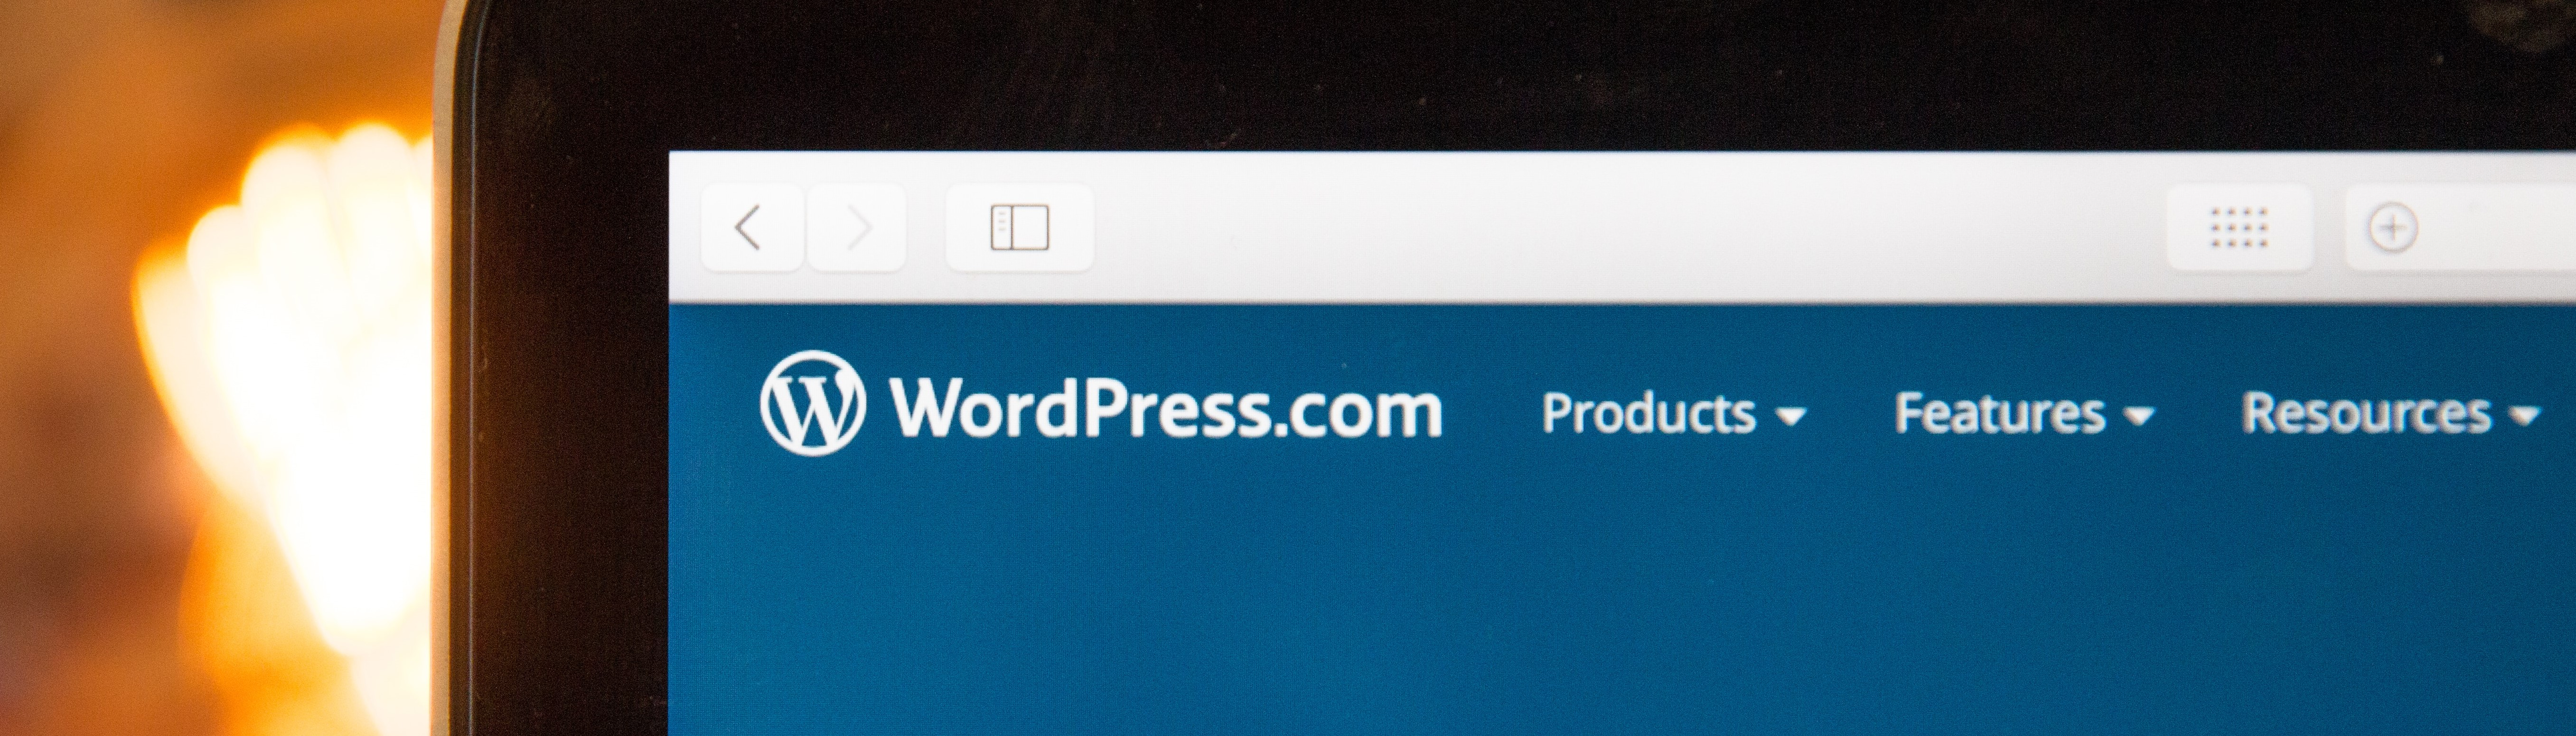 Website van WordPress